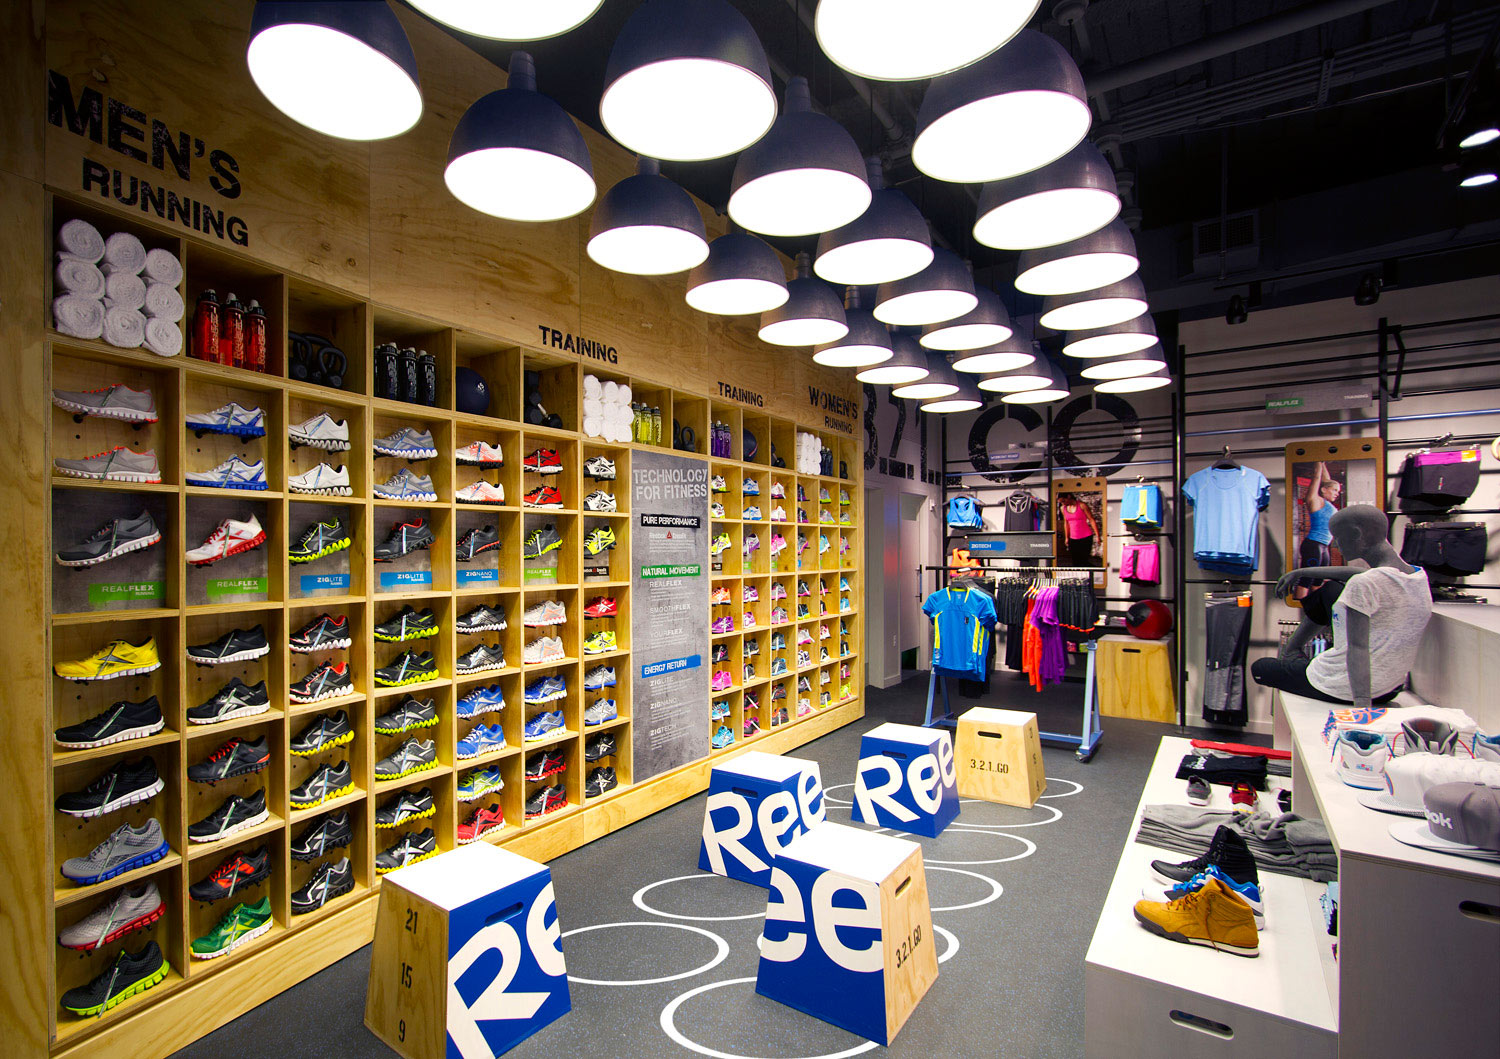 Reebok Outlet Shoes